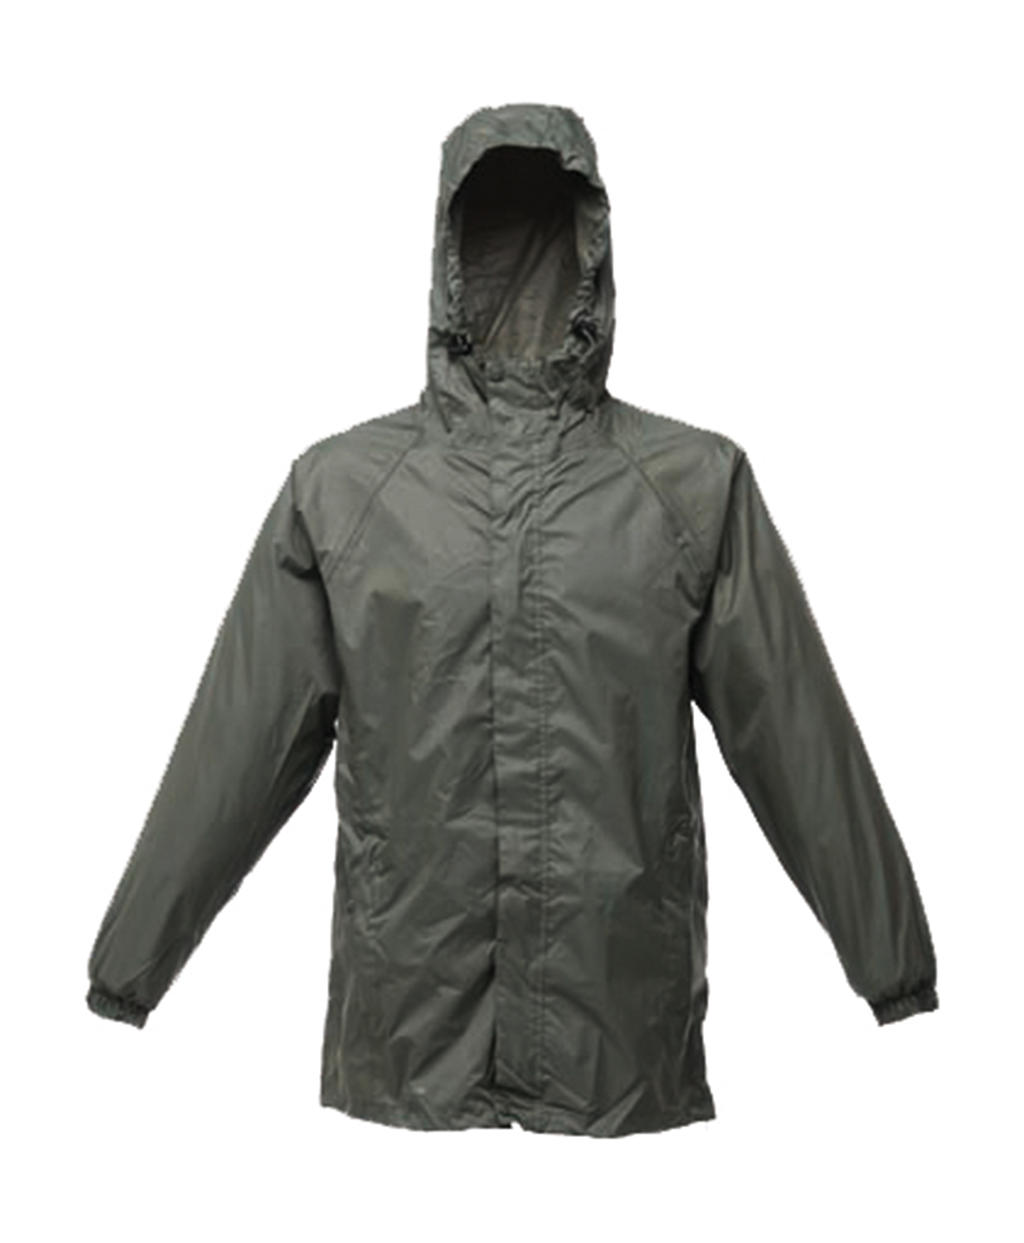 Regatta Packaway II Rainjacket